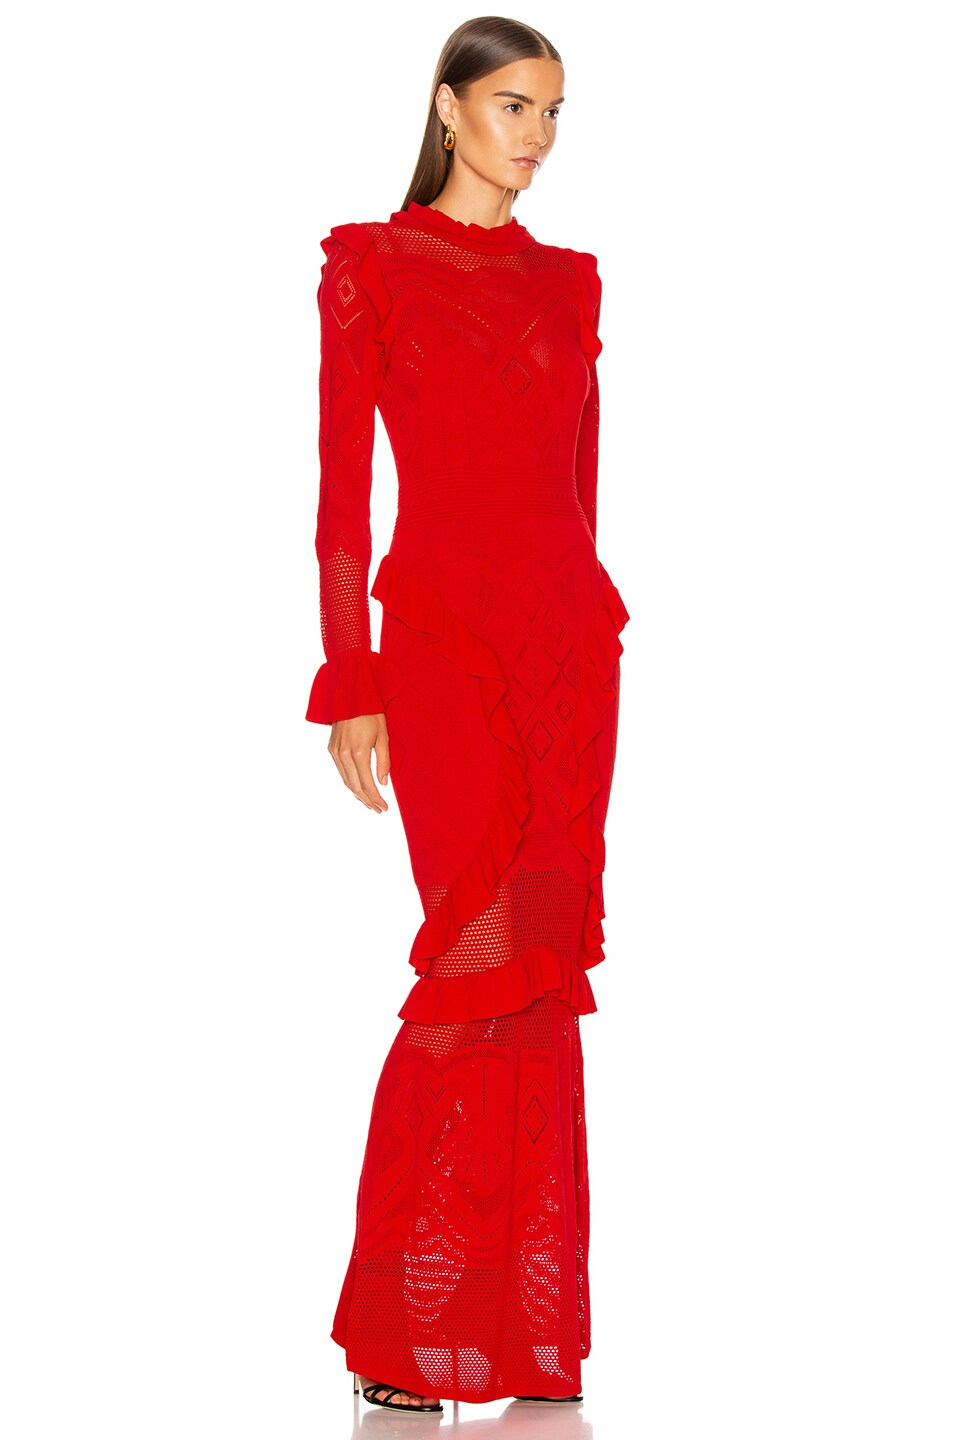 Image 2 of Alexis Ceecee Dress in Red